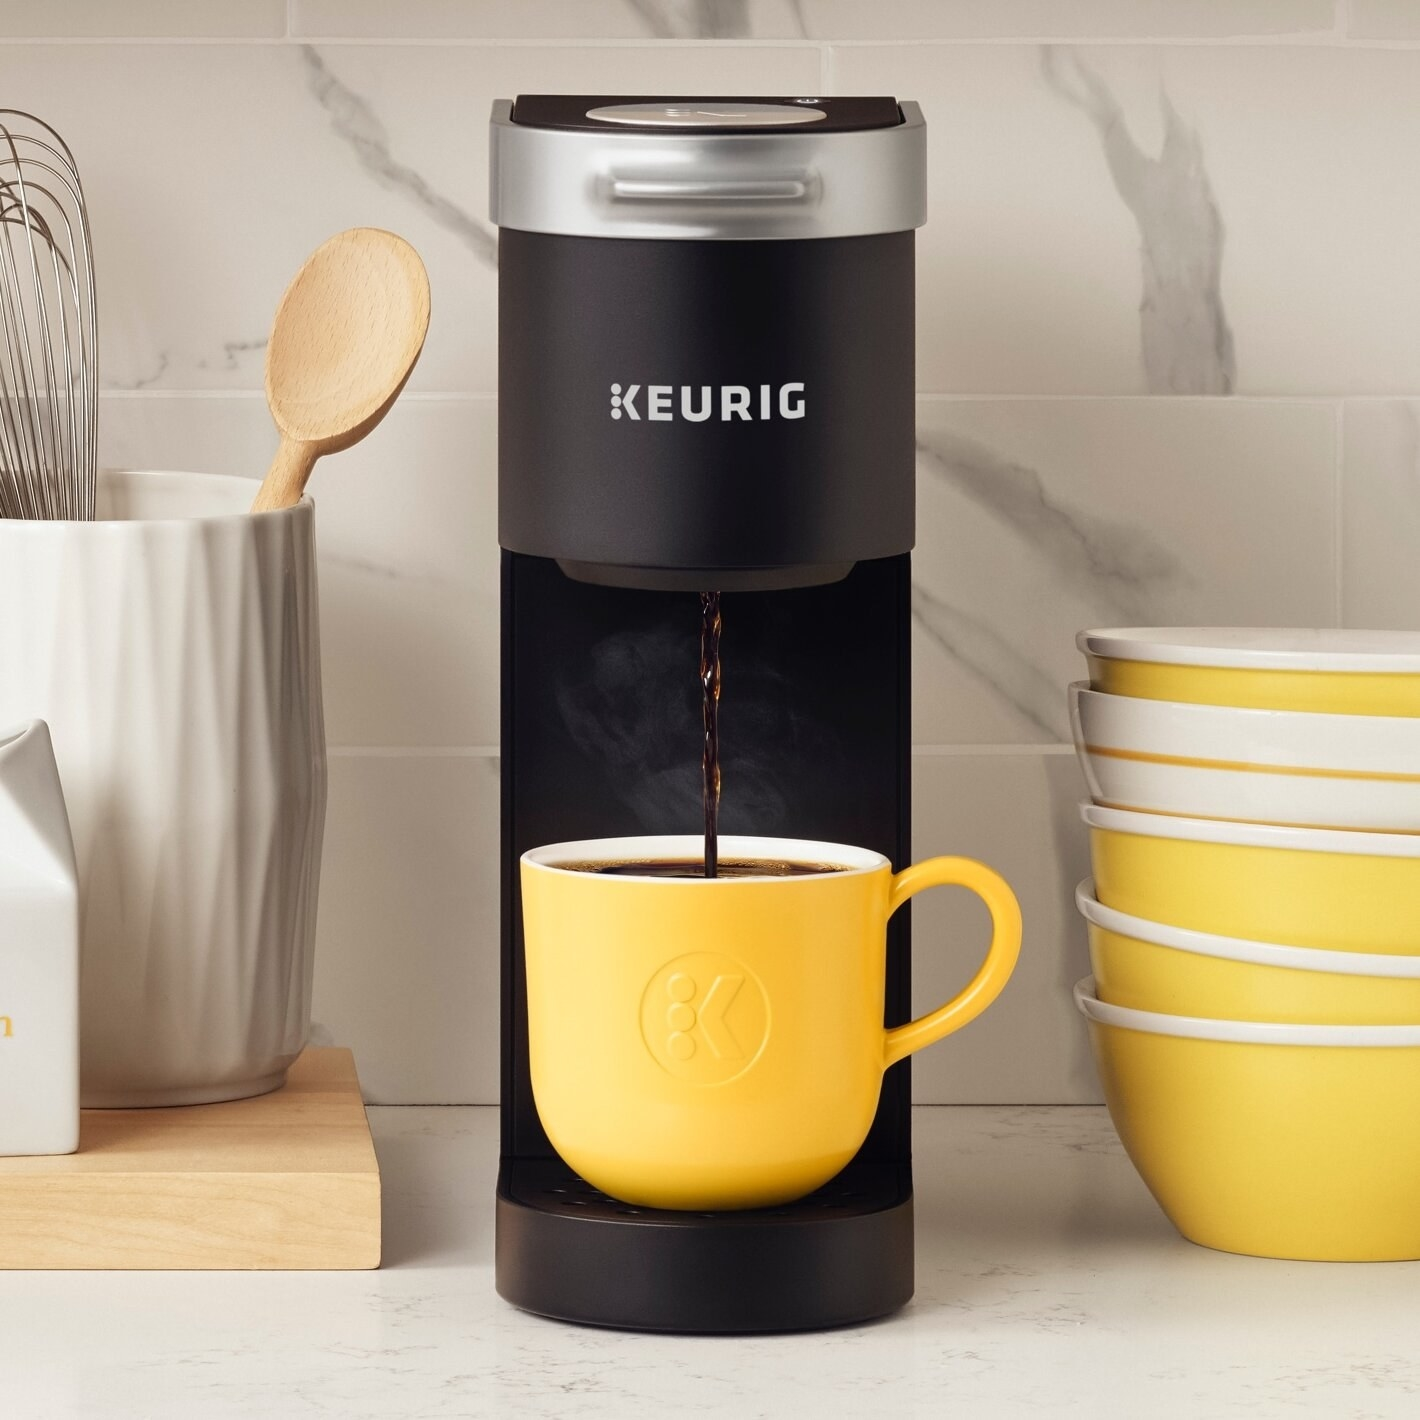 The Keurig